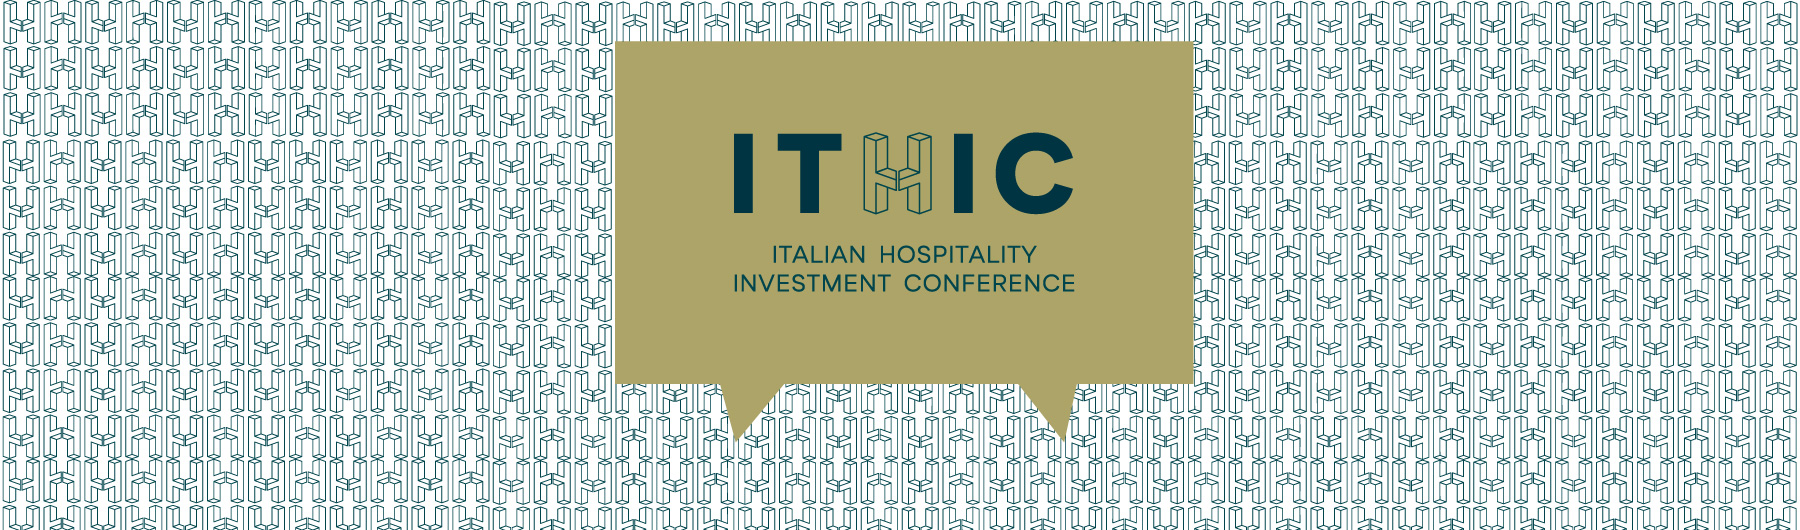 ITHIC - Italian Hospitality Investment Conference